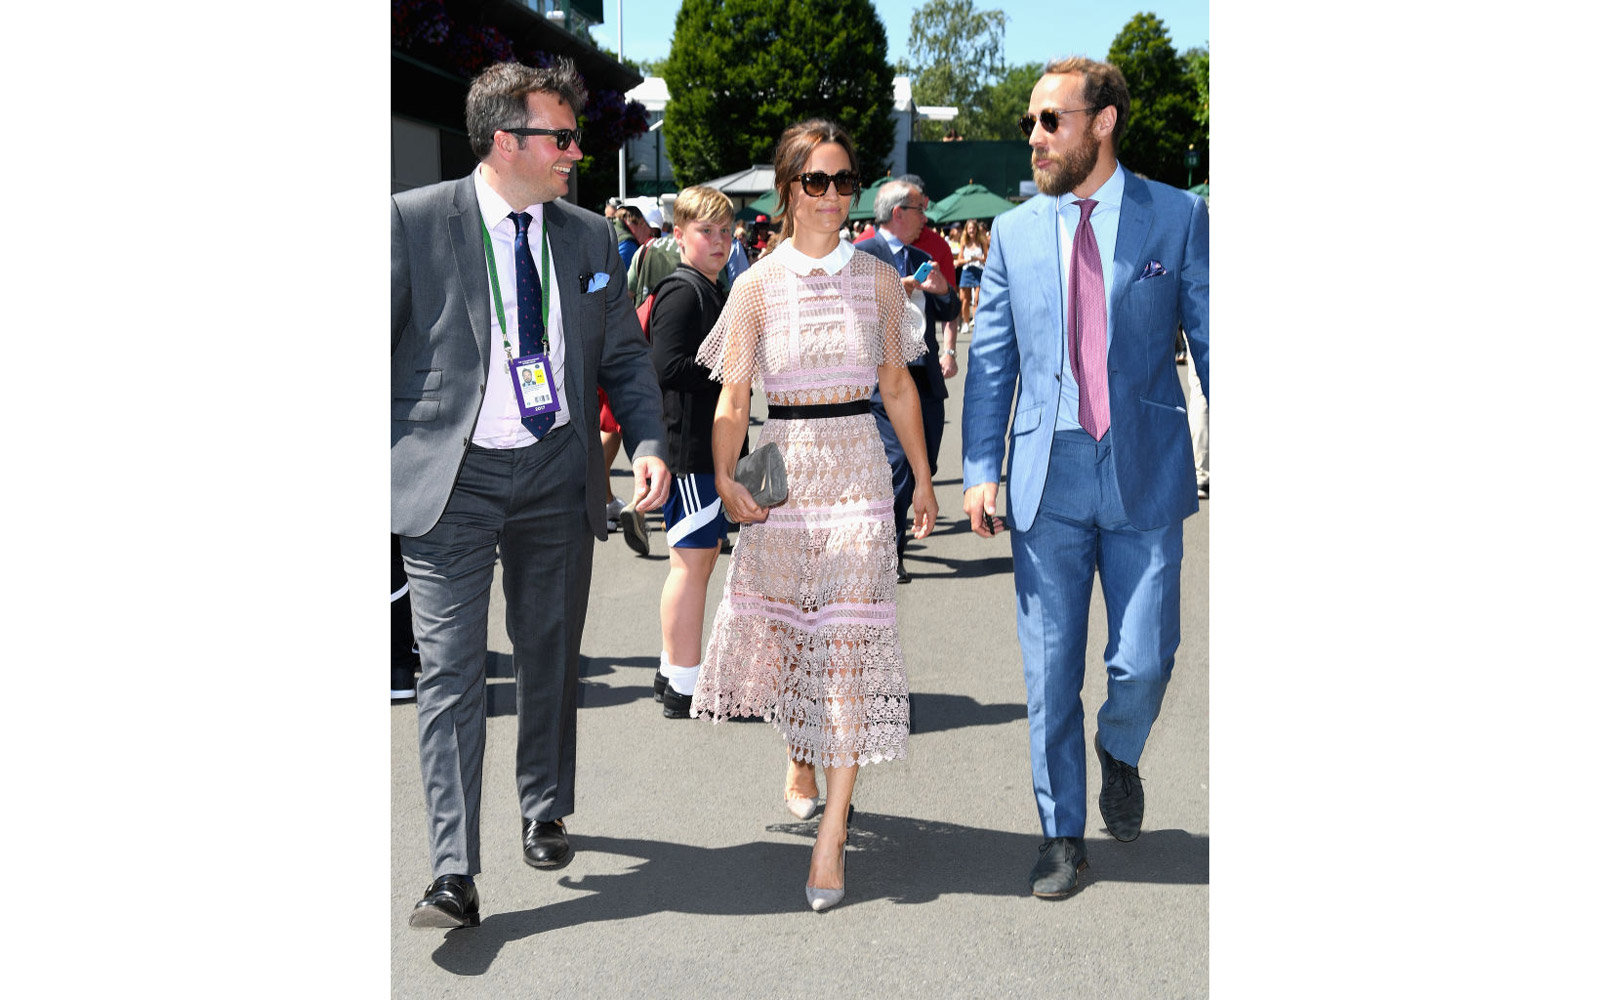 LONDON, ENGLAND - JULY 05:  Pippa Middleton with Andrew Wolfe Murray (L) attend day 3 of Wimbledon 2017 on July 5, 2017 in London, England.  (Photo by Karwai Tang/WireImage)